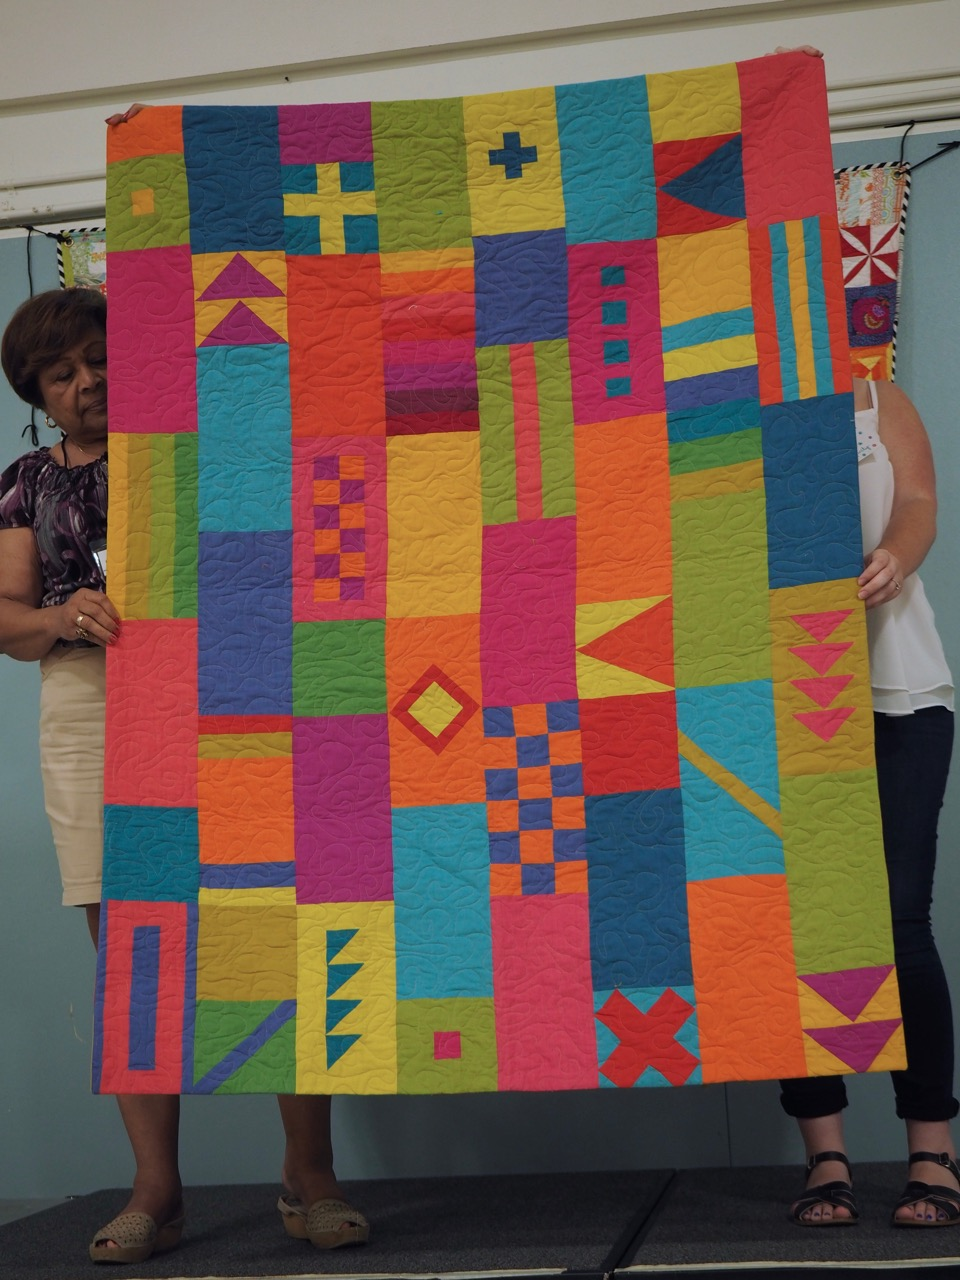 Quilt by Cris Pera